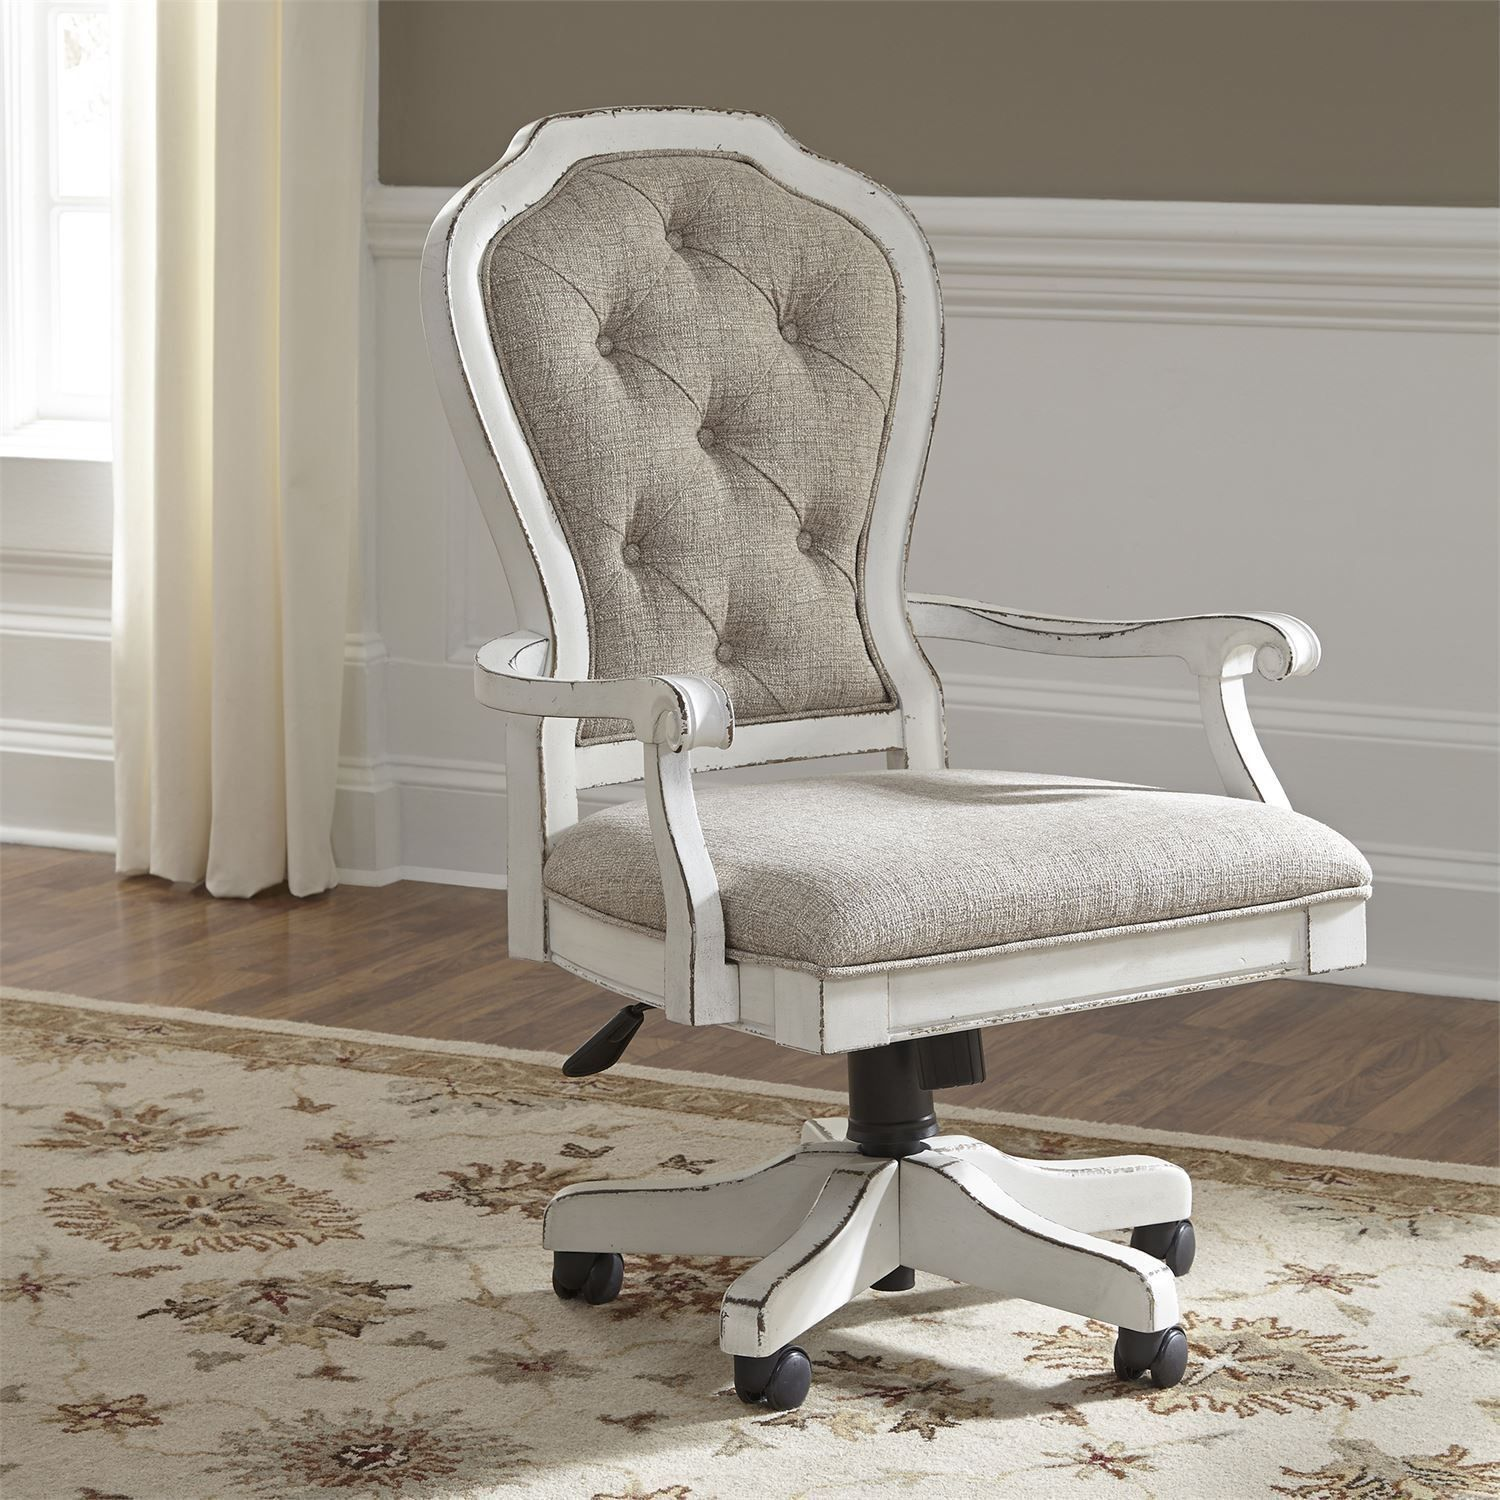 Magnolia Manor Antique White Jr Executive Desk Chair From Liberty Coleman Furniture Furniture Liberty Furniture Chair